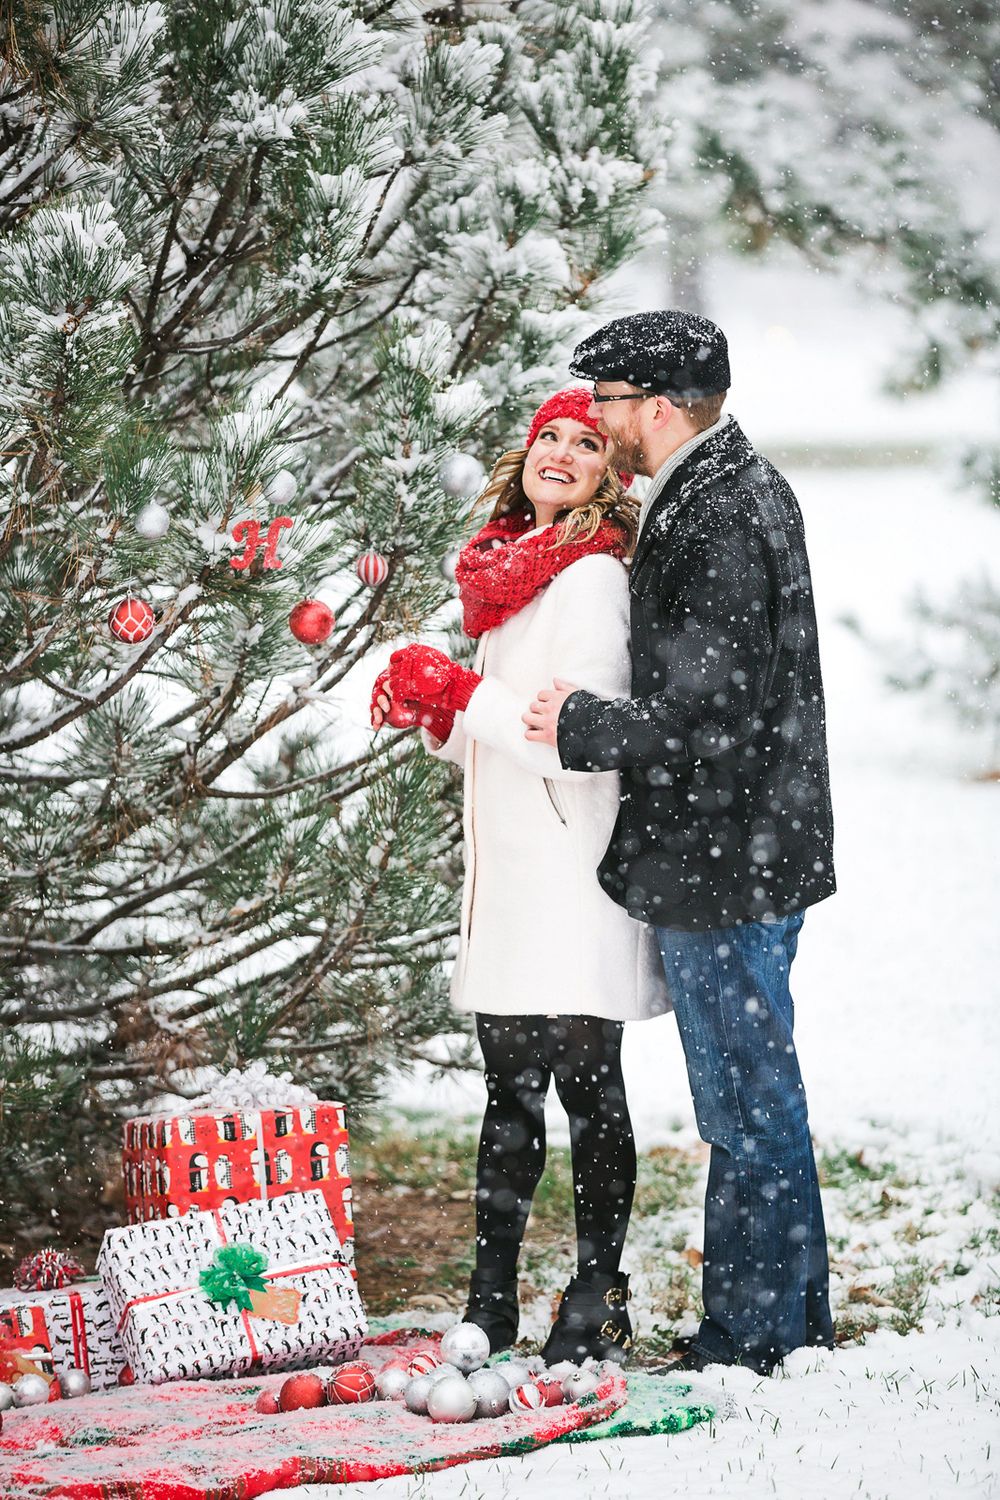 Oldani-Photography-St-Louis-Forest-Park-Engagement-Photos-Snow_20141116_16242900.jpg